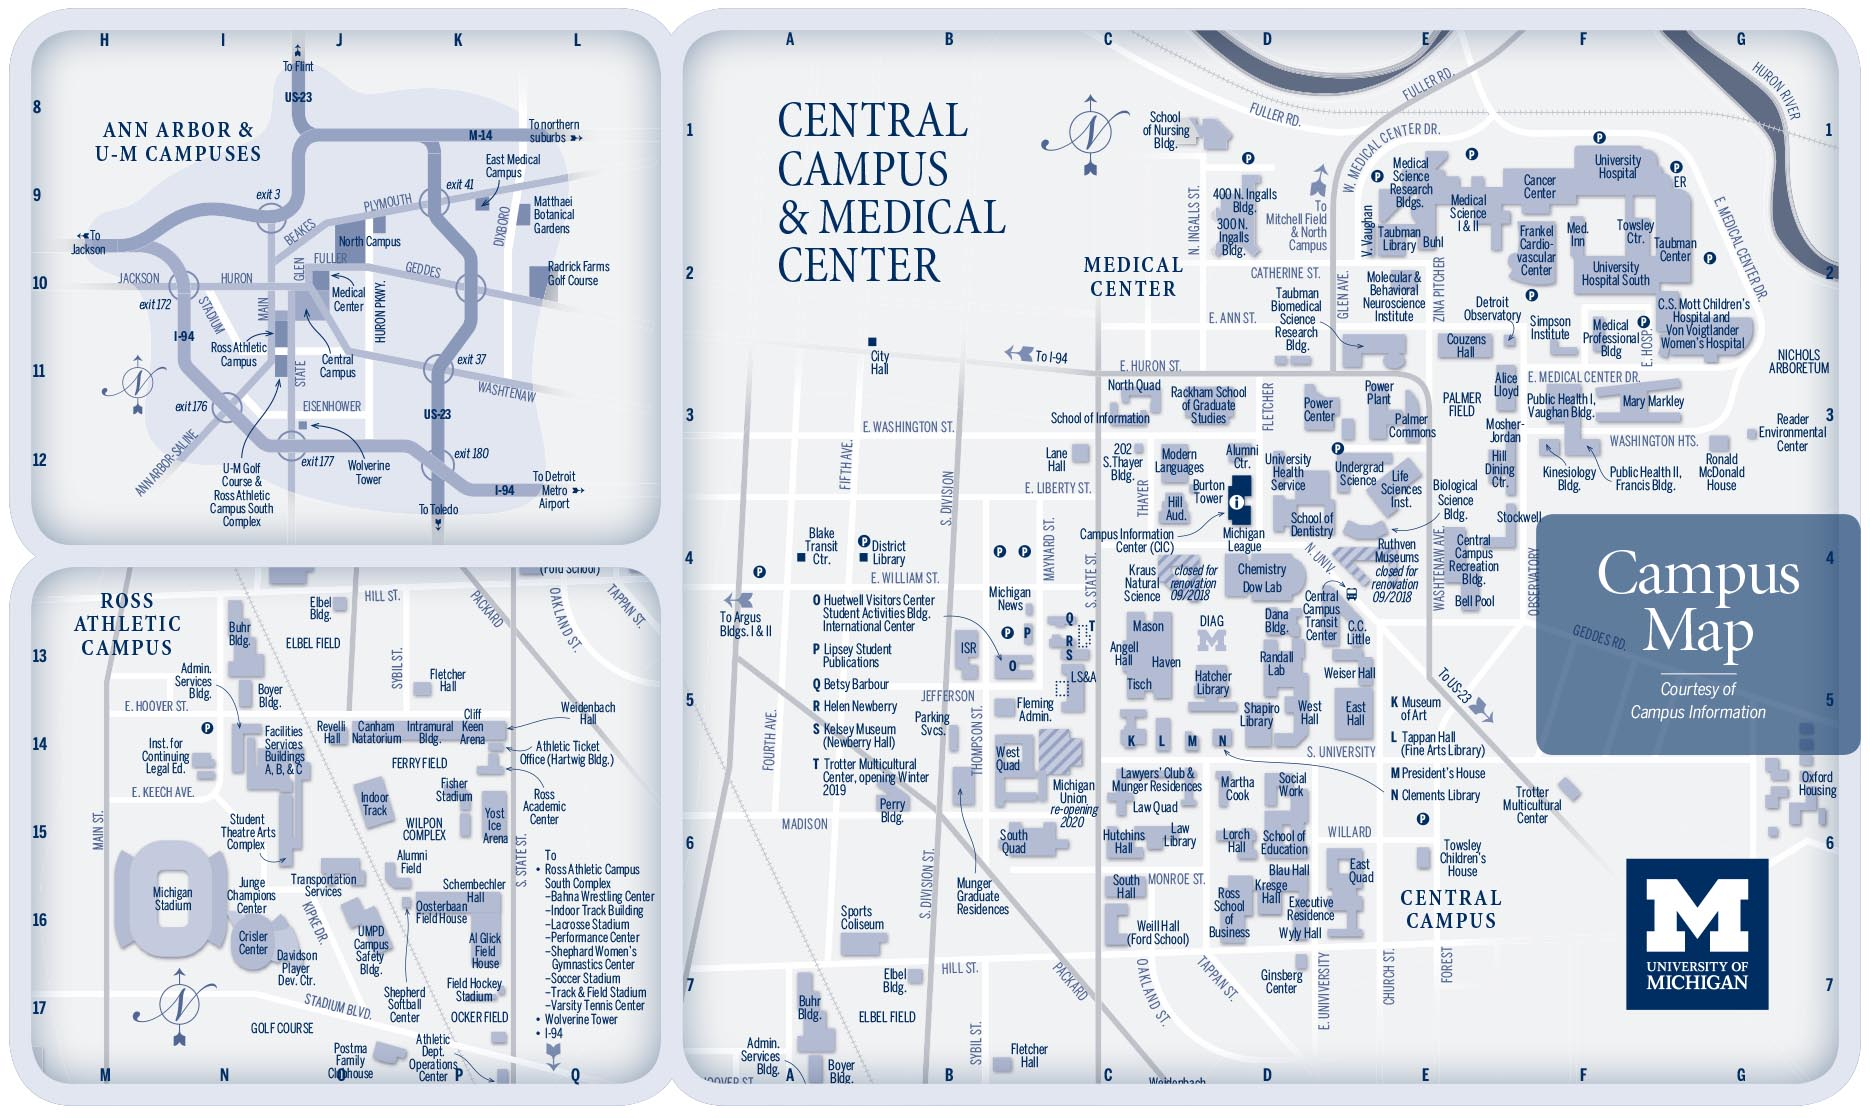 CAMPUS MAPS | University of Michigan Online Visitor's Guide